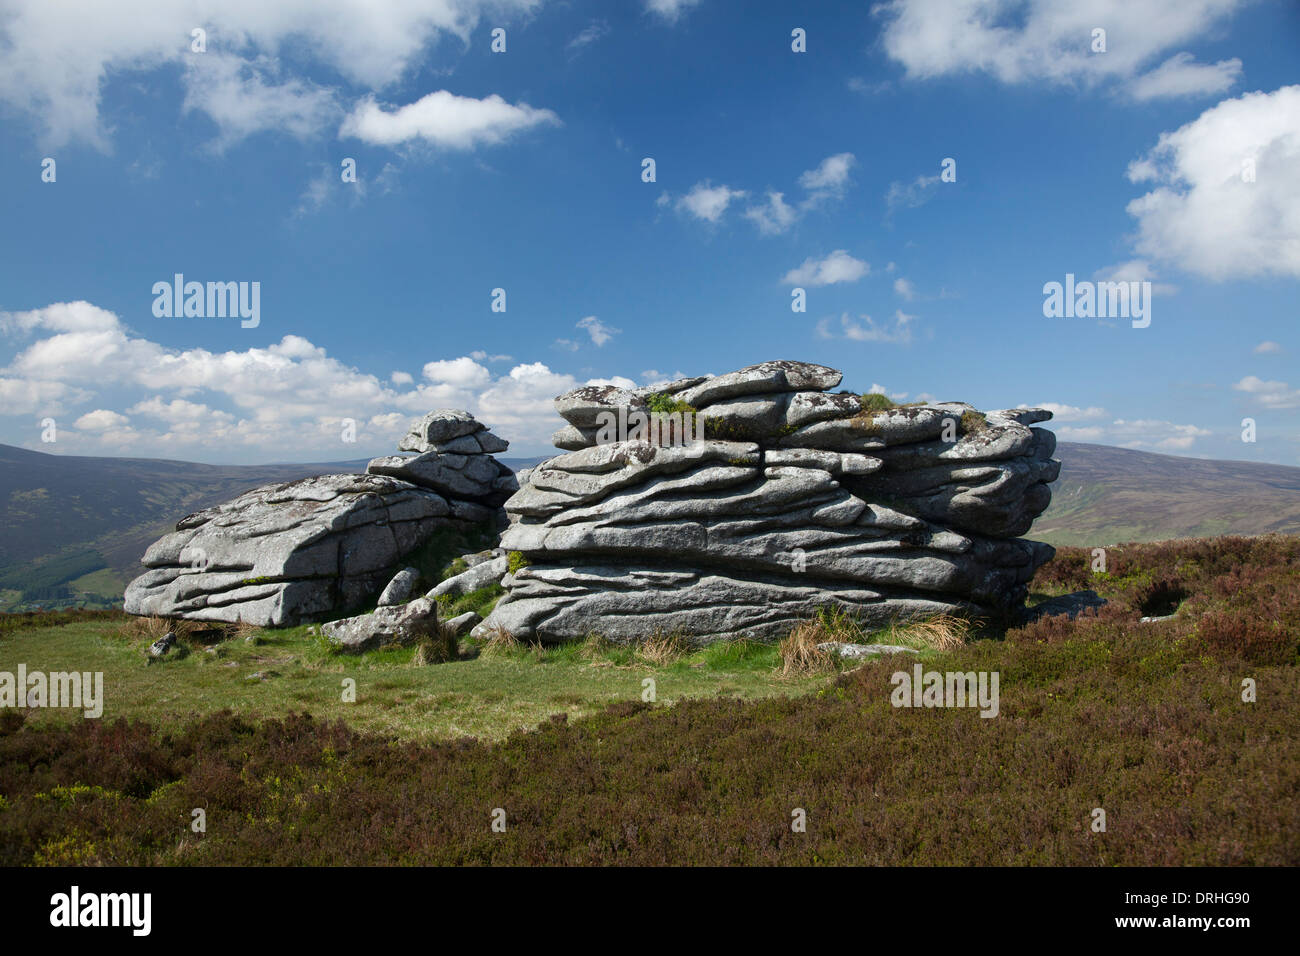 The granite tor of Fitzwilliam's Seat, near the summit of Knocknagun, On the border of counties Dublin and Wicklow, Ireland. - Stock Image